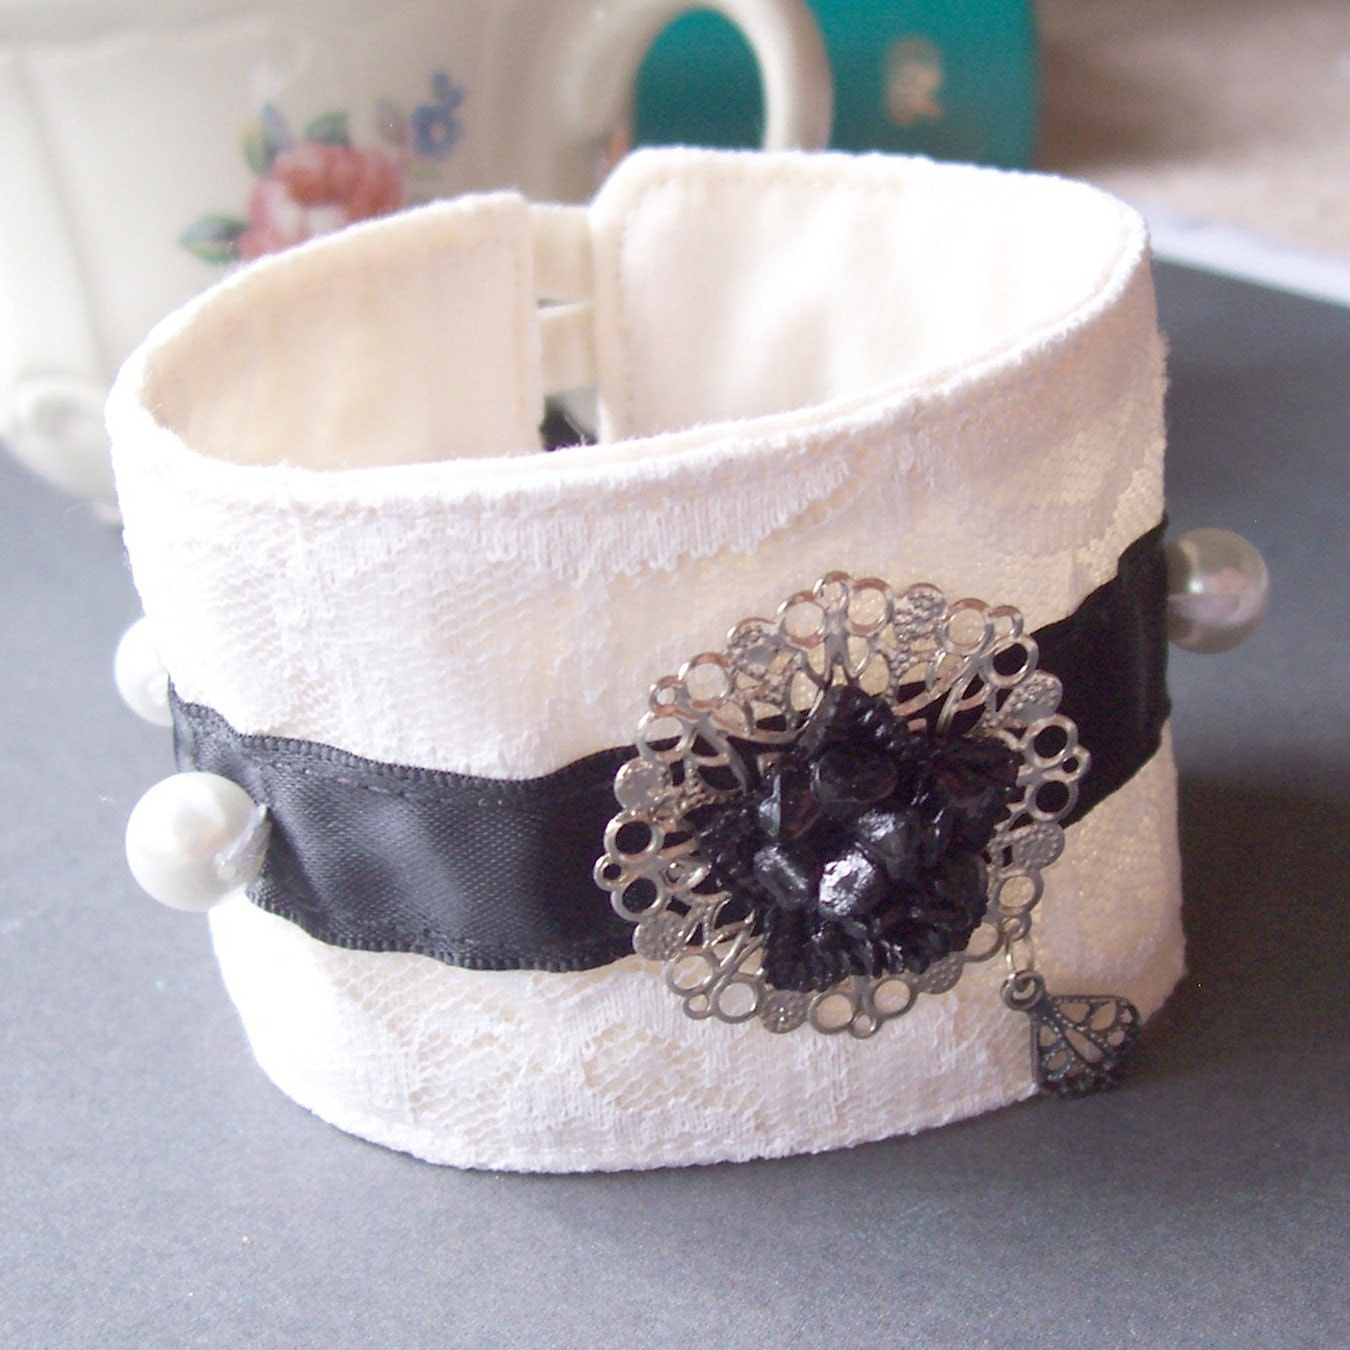 Fabric Cuff. Black Tie. Bracelet. Vintage Flower Cabochon. Lace. Ribbon. Black and White  by dspdavey on Etsy